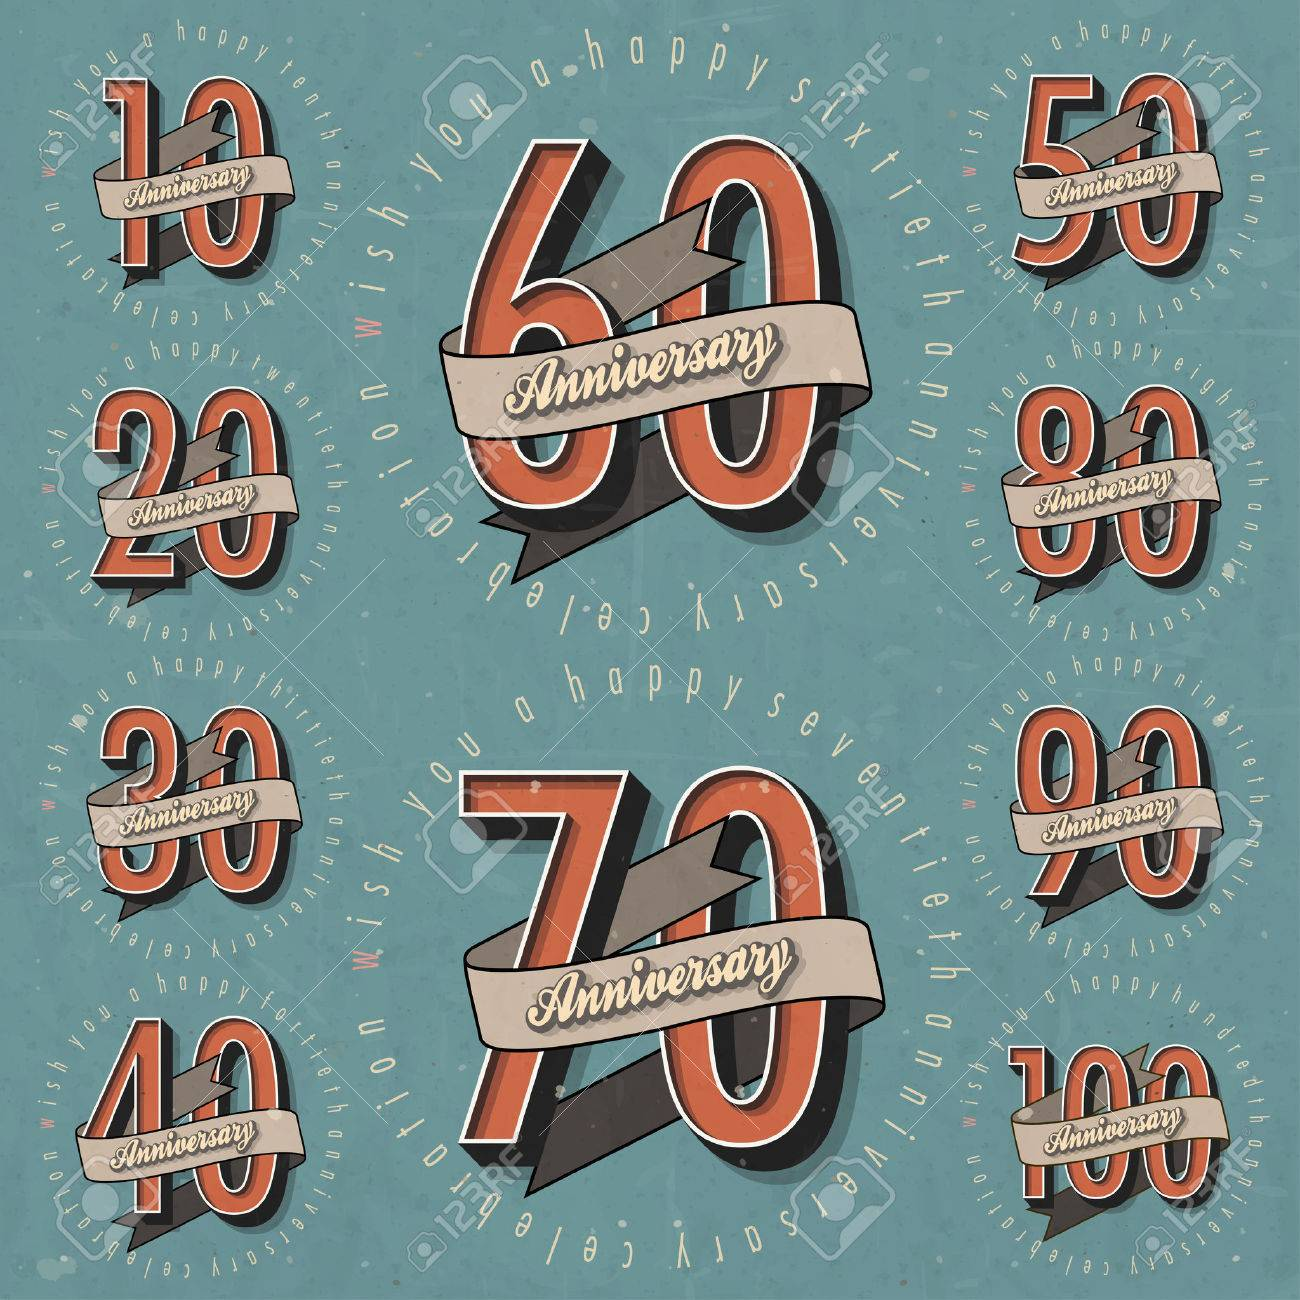 Anniversary sign collection and cards design in retro style anniversary sign collection and cards design in retro style template of anniversary jubilee or birthday yadclub Image collections